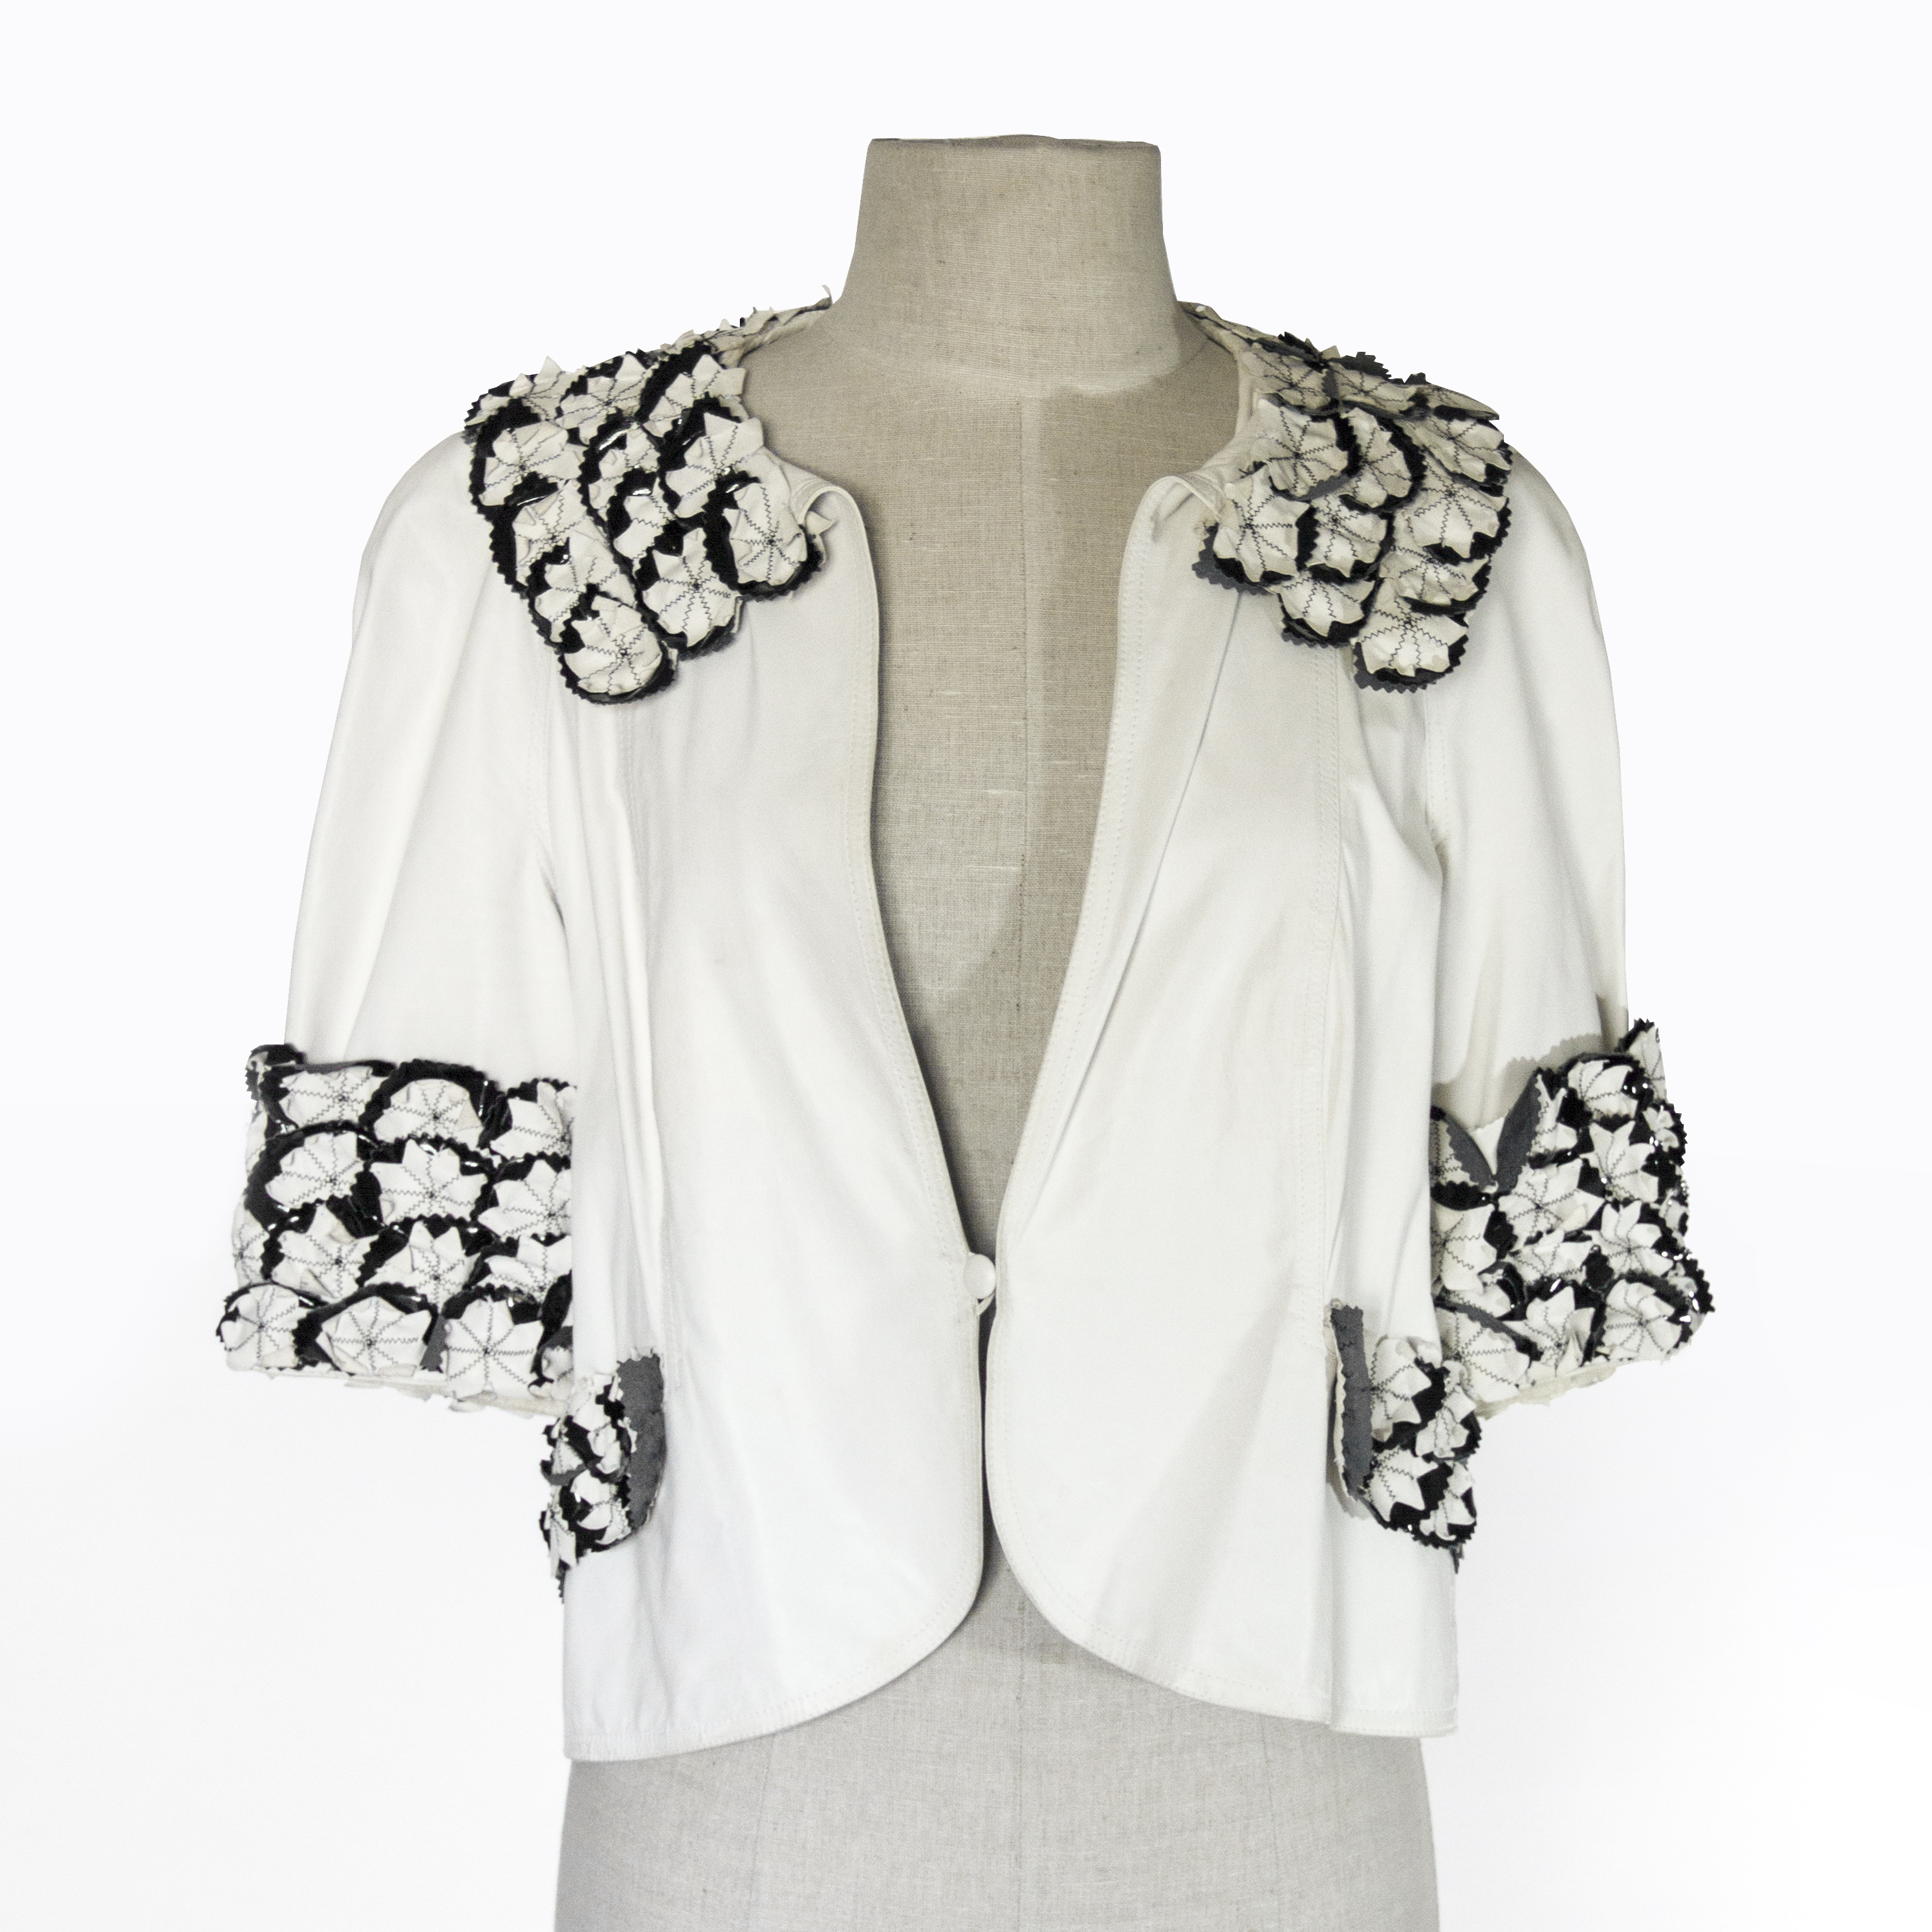 Fendi White Leather Jacket.jpg